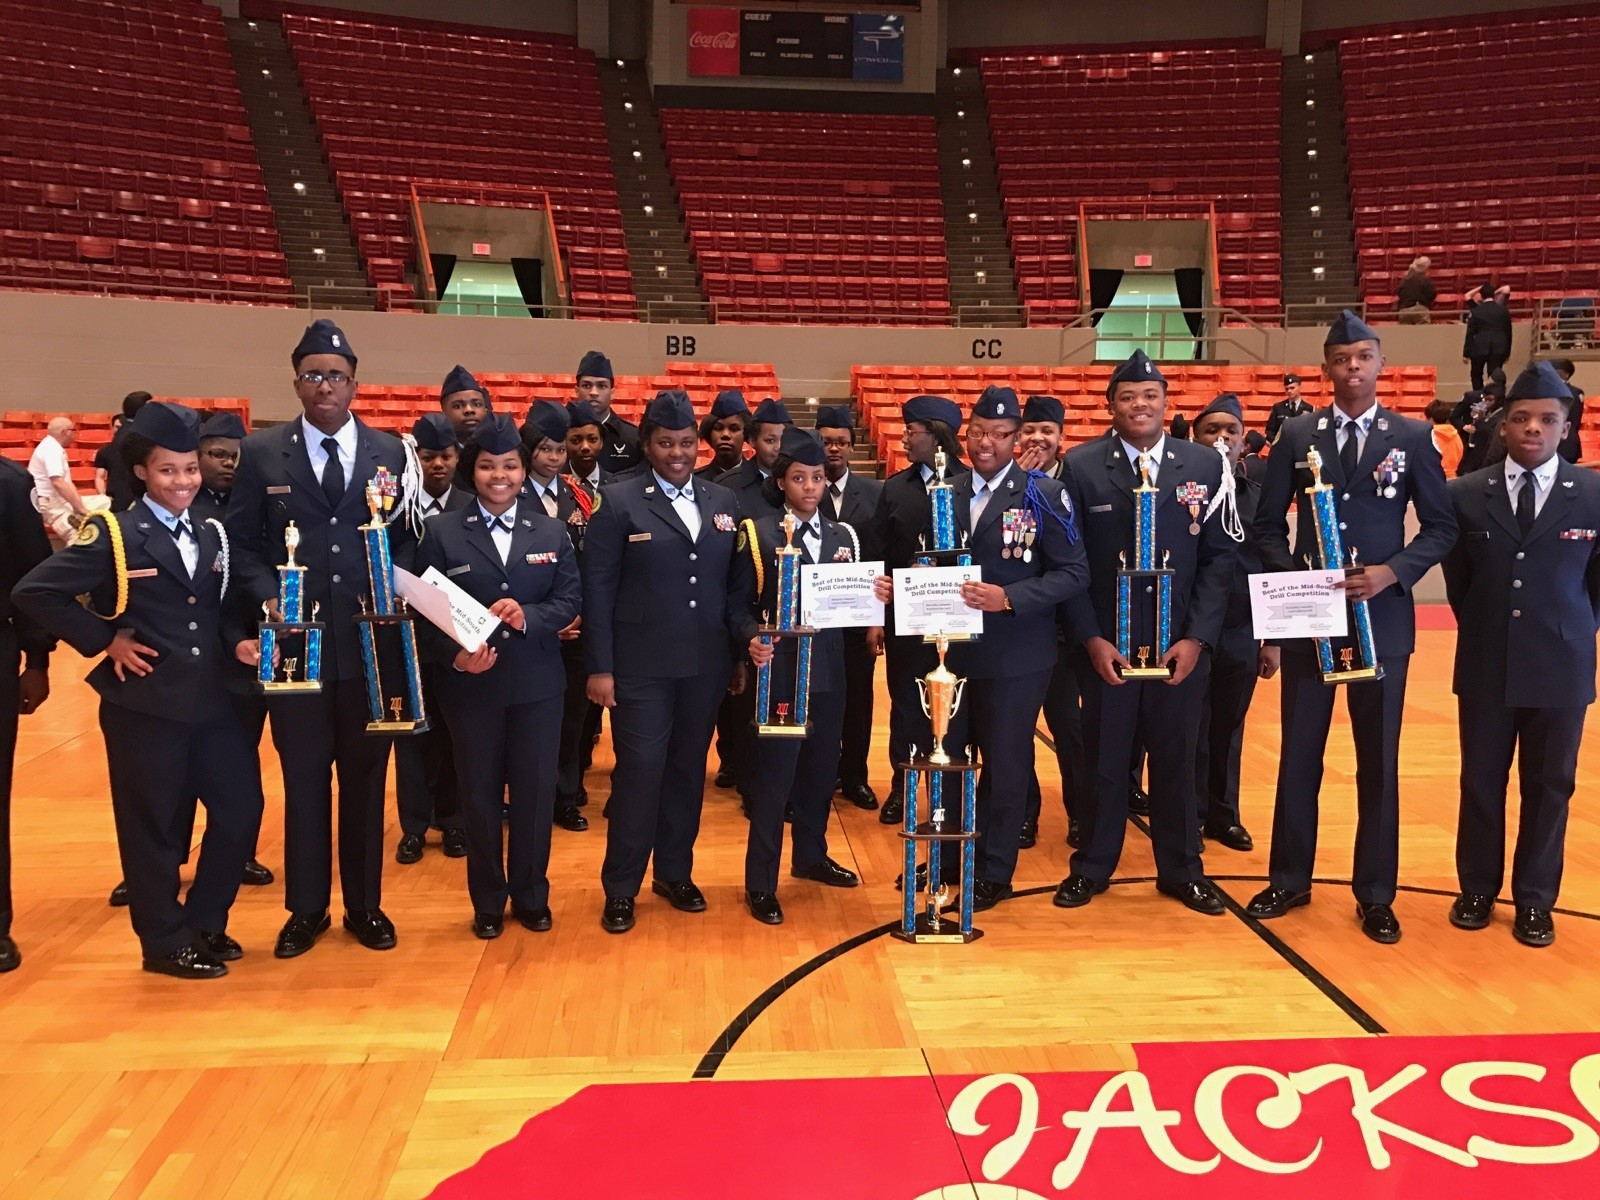 Mississippi tunica county dundee - Ms 951 Air Force Jrotc Places 2nd Overall In Drill Team Competition